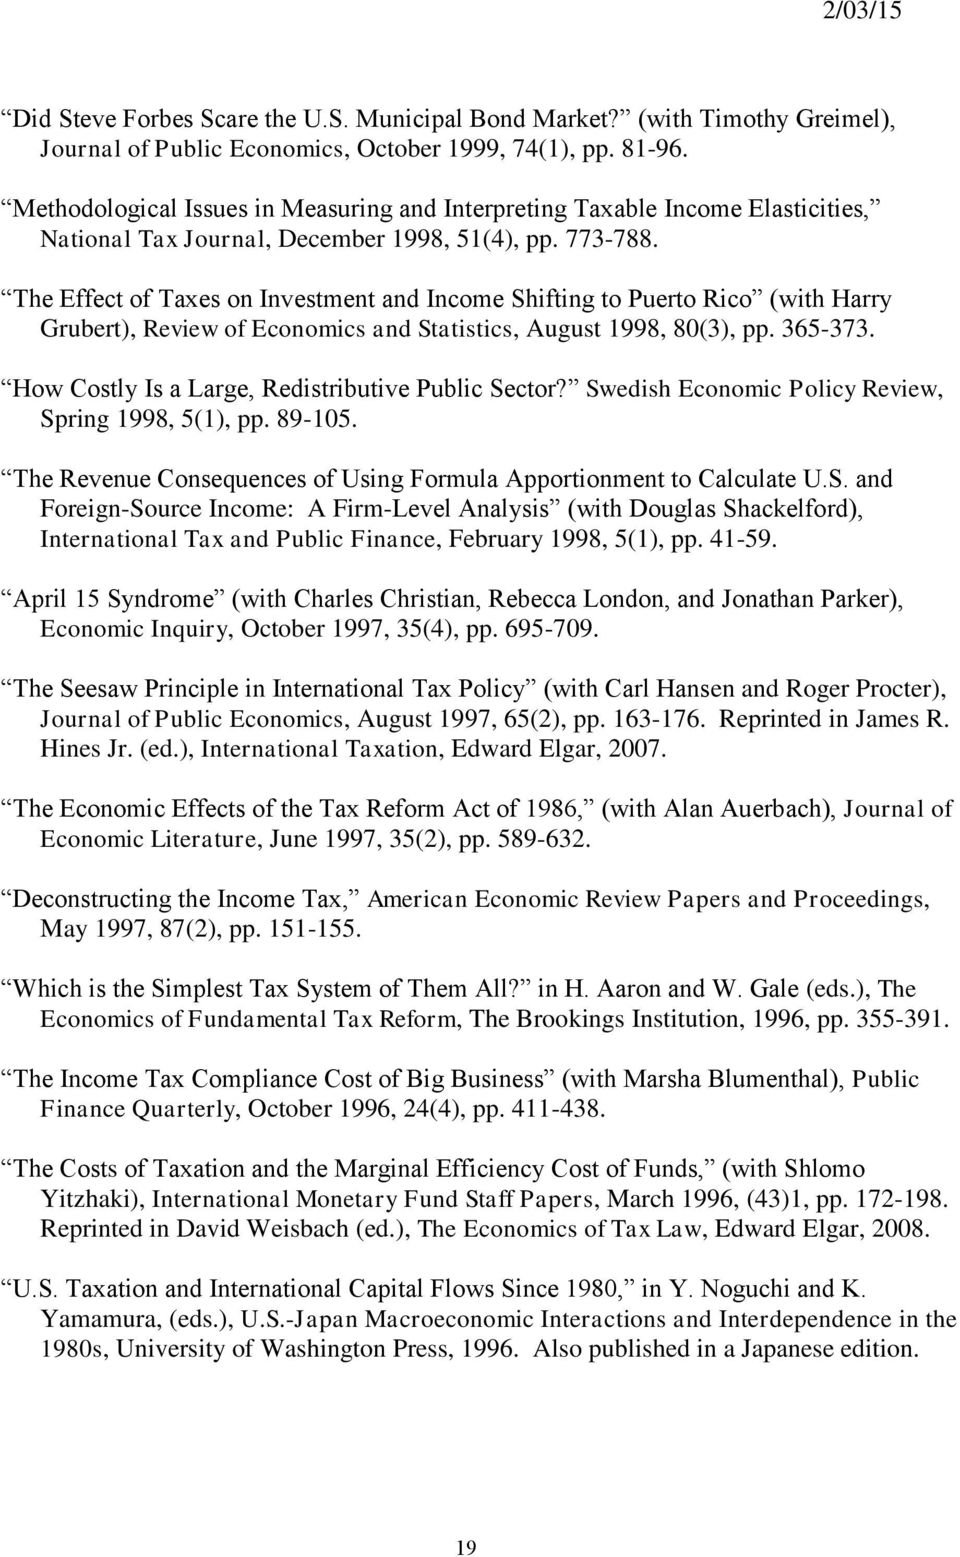 The Effect of Taxes on Investment and Income Shifting to Puerto Rico (with Harry Grubert), Review of Economics and Statistics, August 1998, 80(3), pp. 365-373.